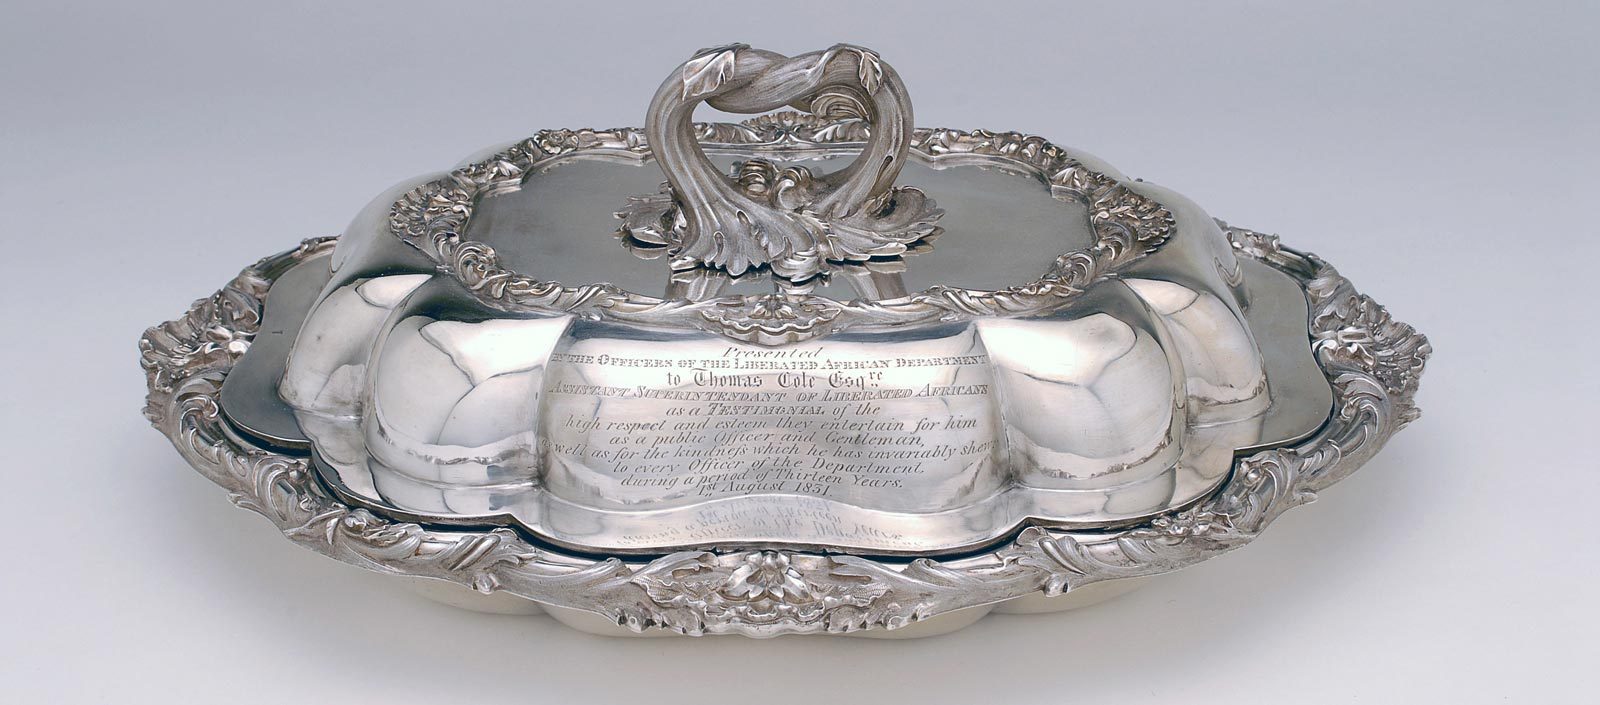 Silver dish presented to Thomas Cole on 1 August 1831 by the Officers of the Liberated African Department